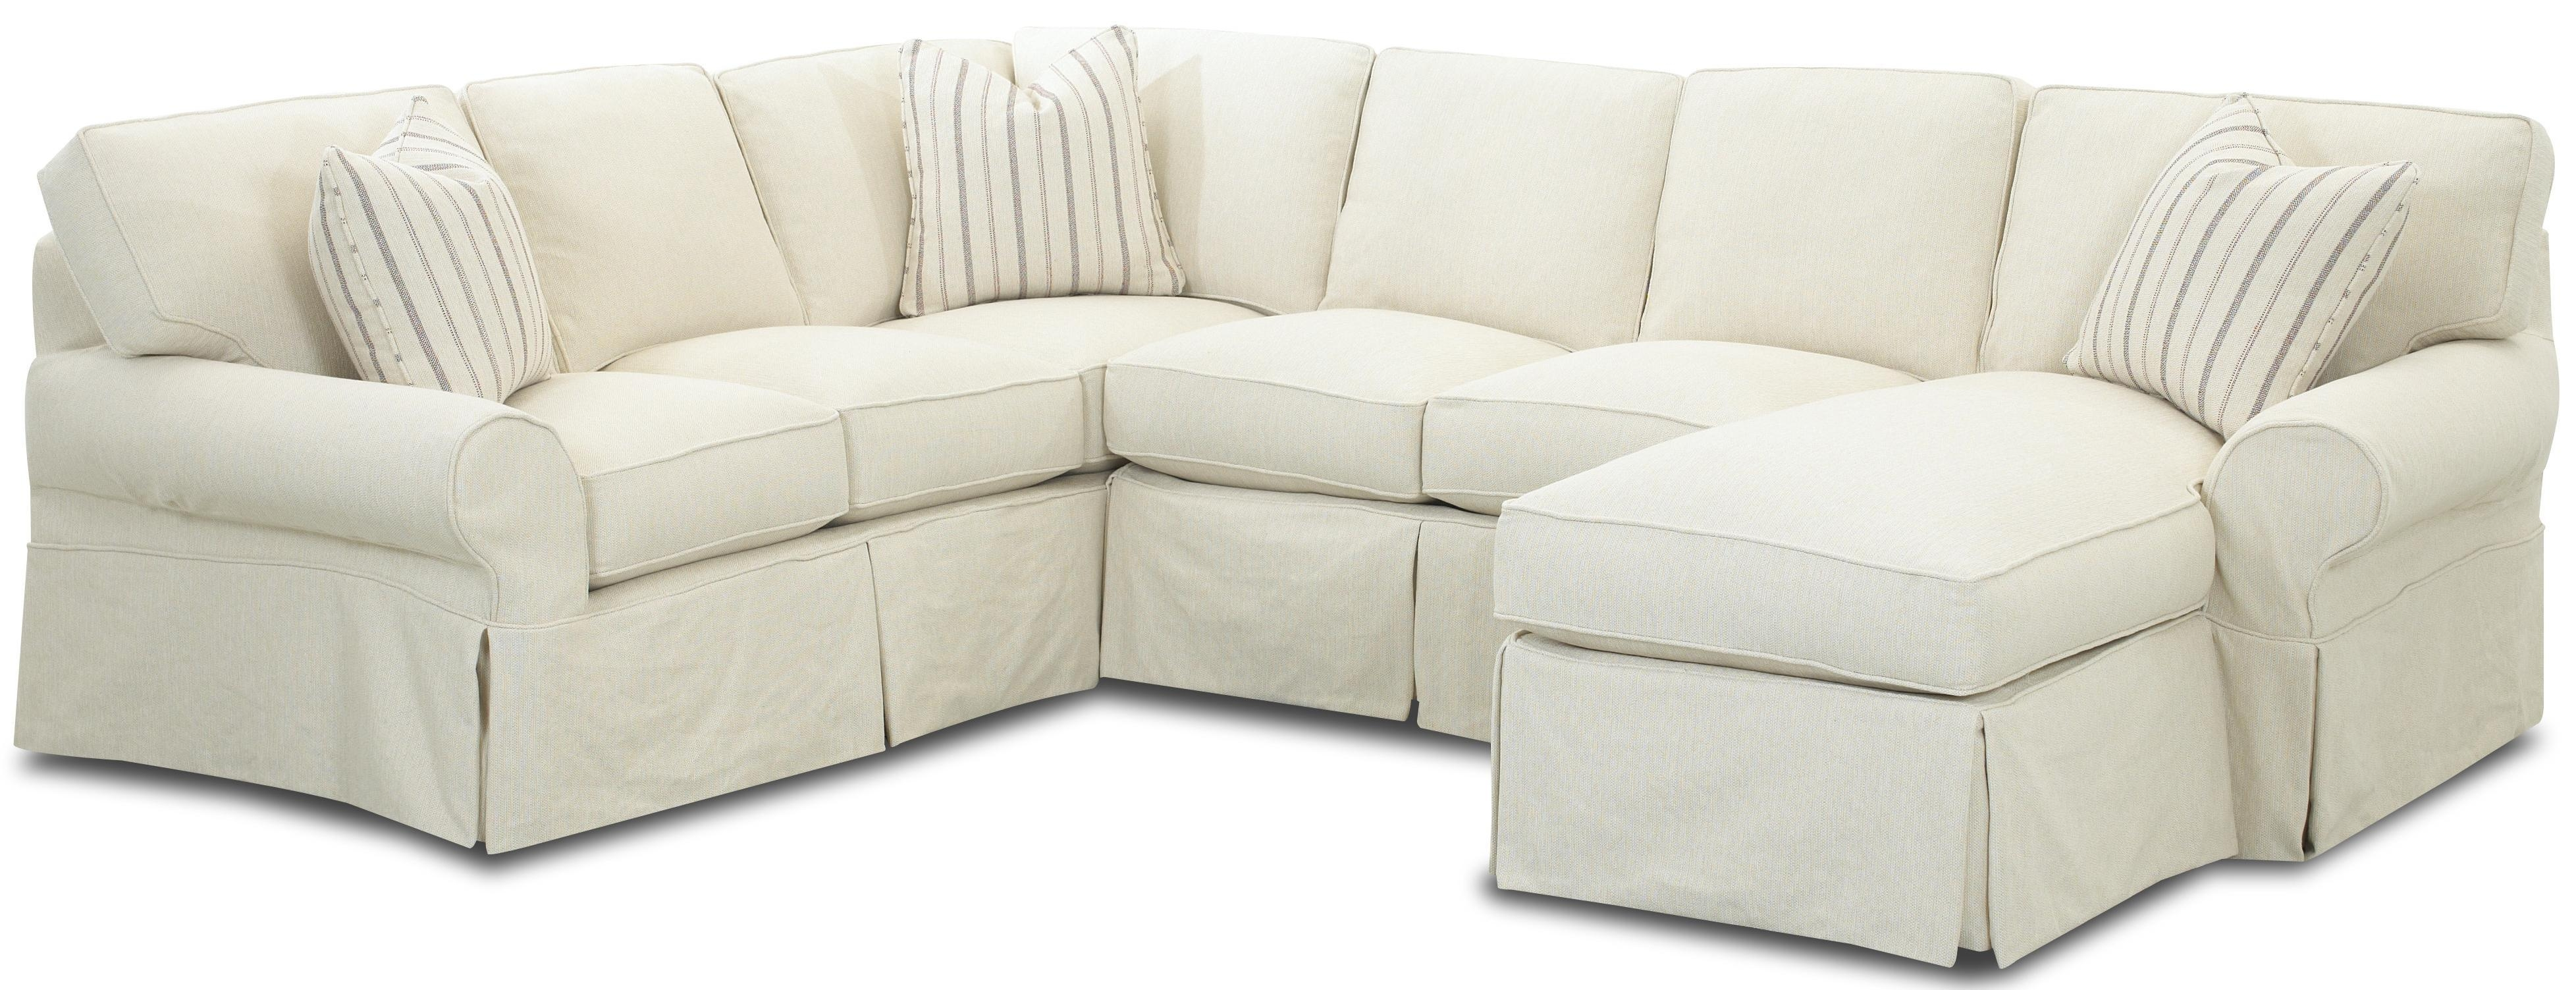 Inspirations: Interesting Furniture Sectional Sofa Slipcovers For Inside Sectional Sofa Covers (View 5 of 20)